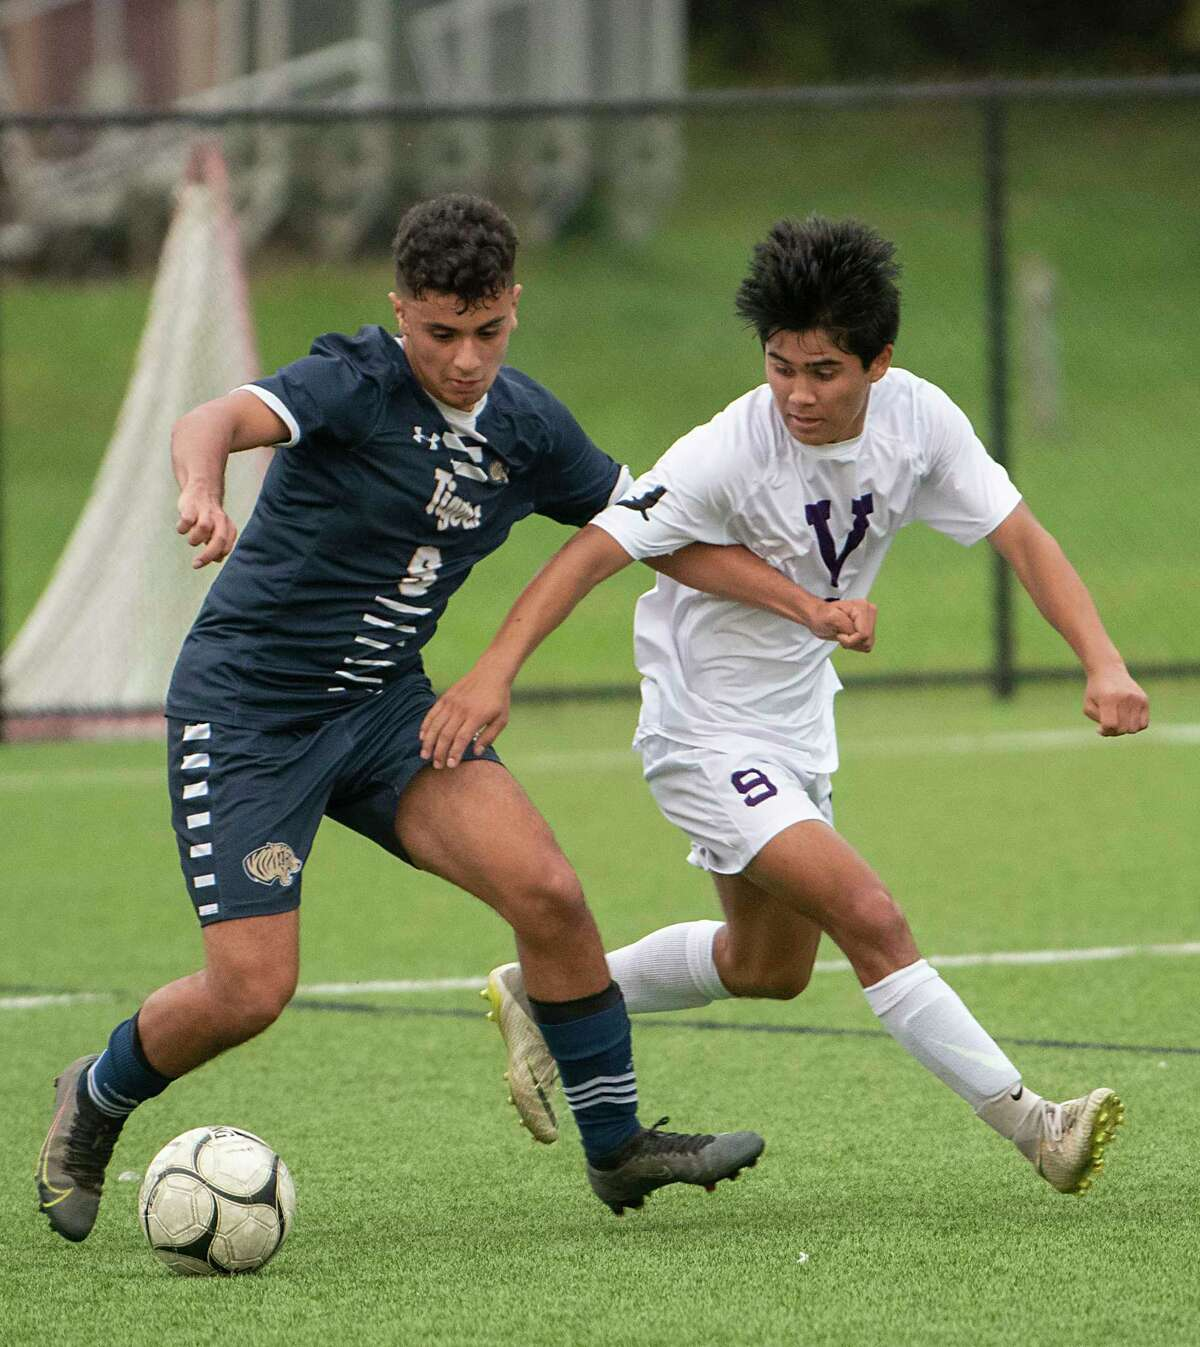 Cohoes' Johnny Martinez-Peraza, left, battles for the ball with Voorheesville's DylanEnslinn during the Colonial Council tournament boys' soccer game on Wednesday, Oct, 13, 2021 in Troy, N.Y.